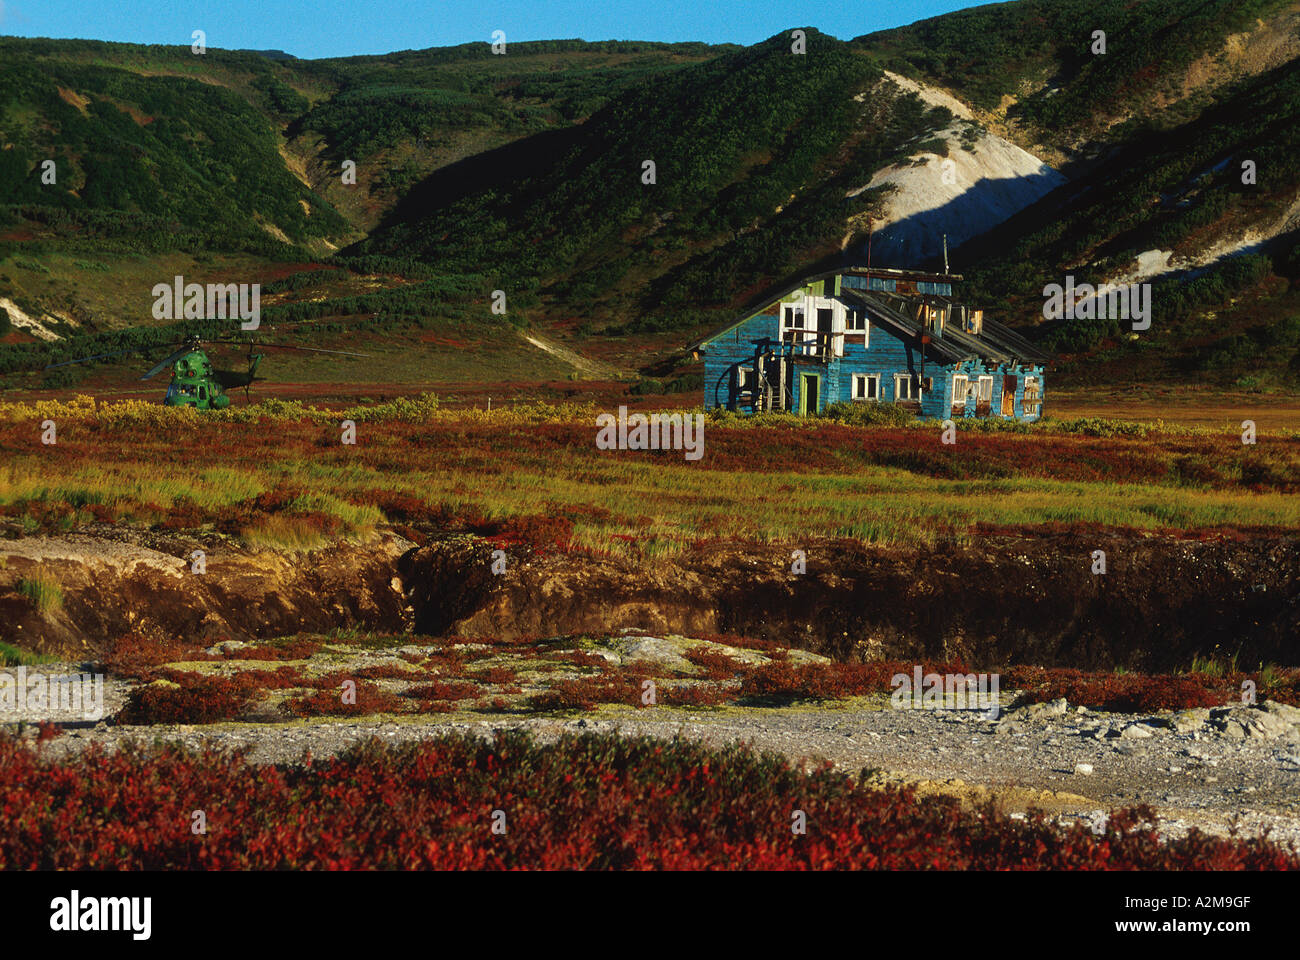 Russia, Kamchatka, remains of the big volcanologist research station - Stock Image